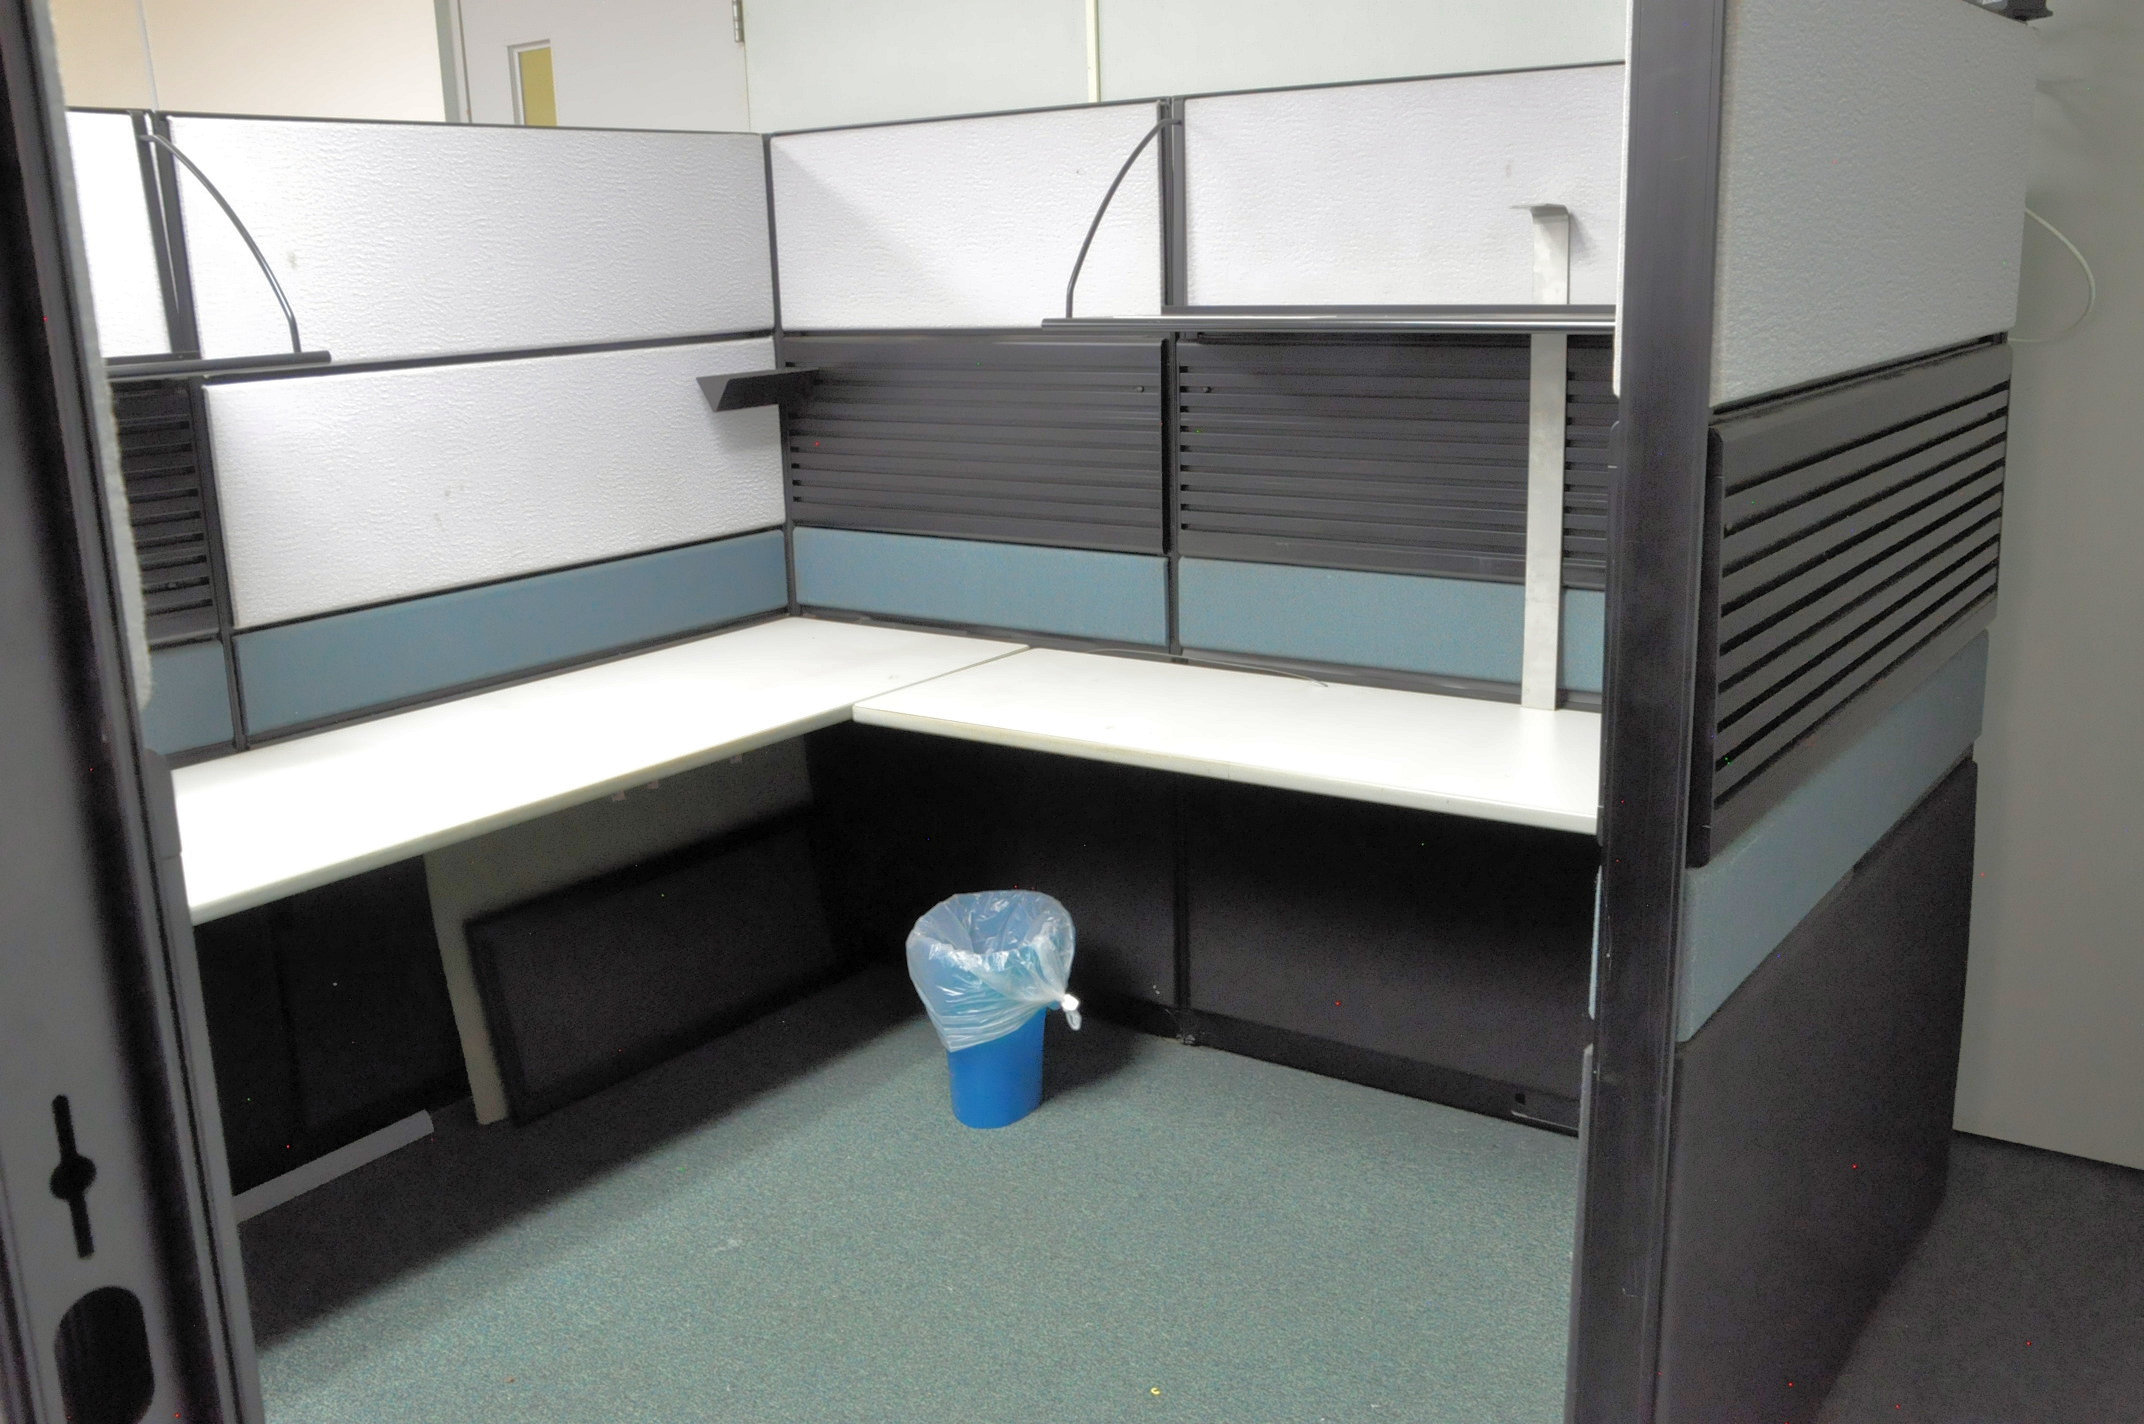 Cubical Partition Work System and Cubicle Panels in (1) Room, (Furniture Not Included) - Image 2 of 3